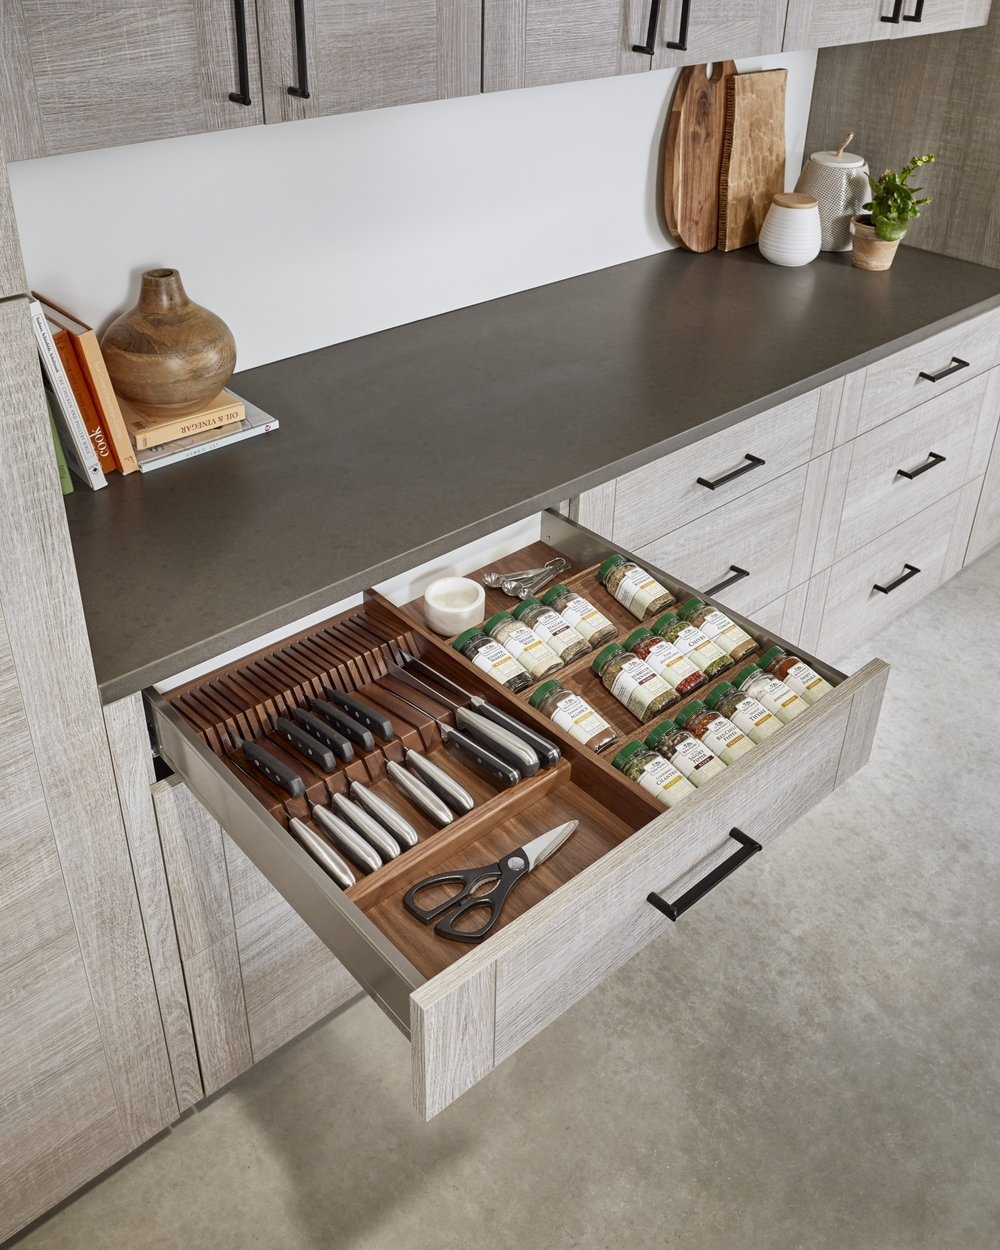 Drawer Organizer Solutions -